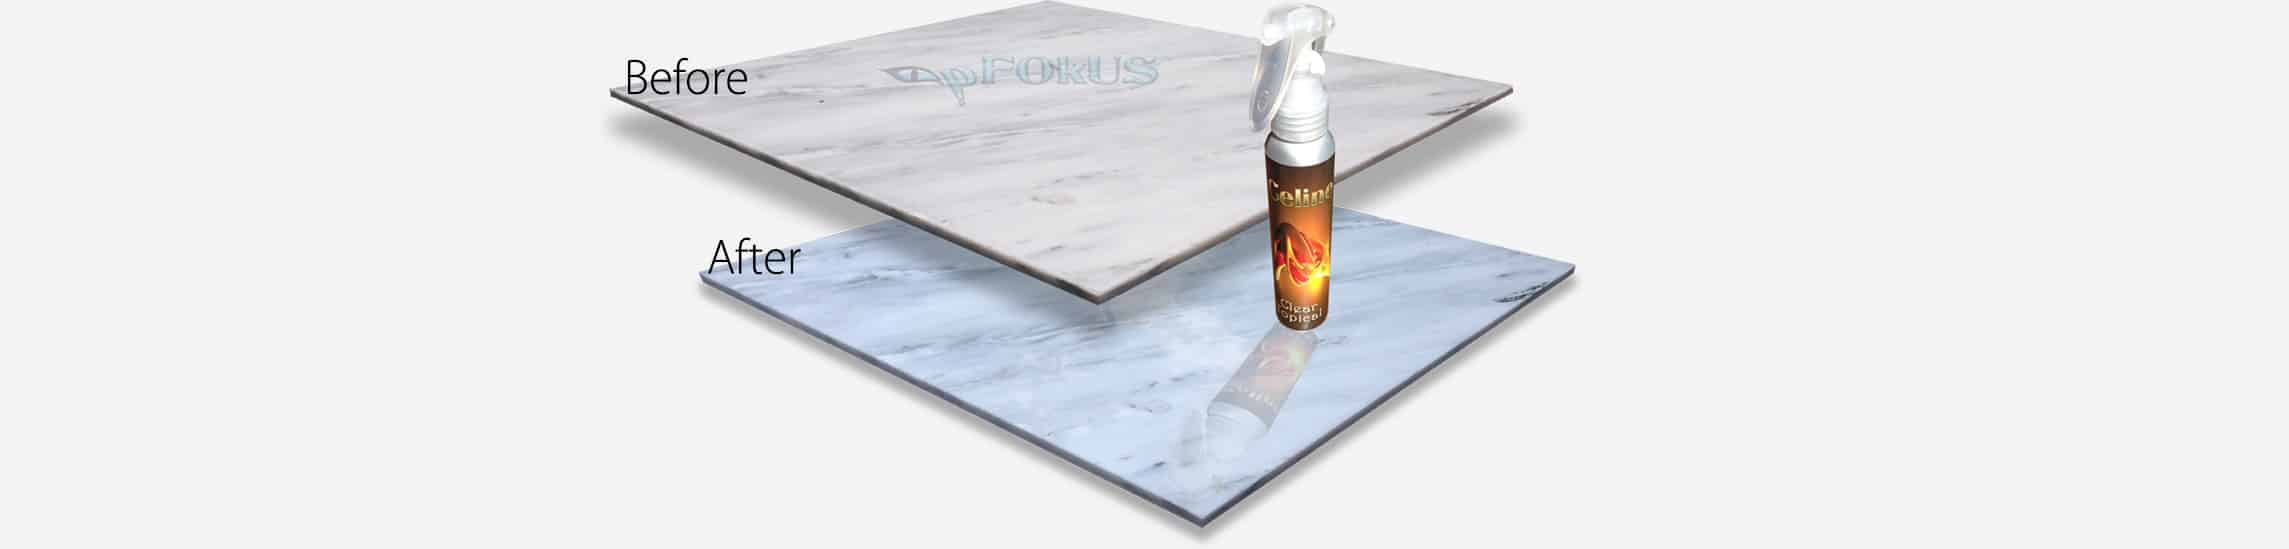 Celine-clear-grout-solvent-sealer